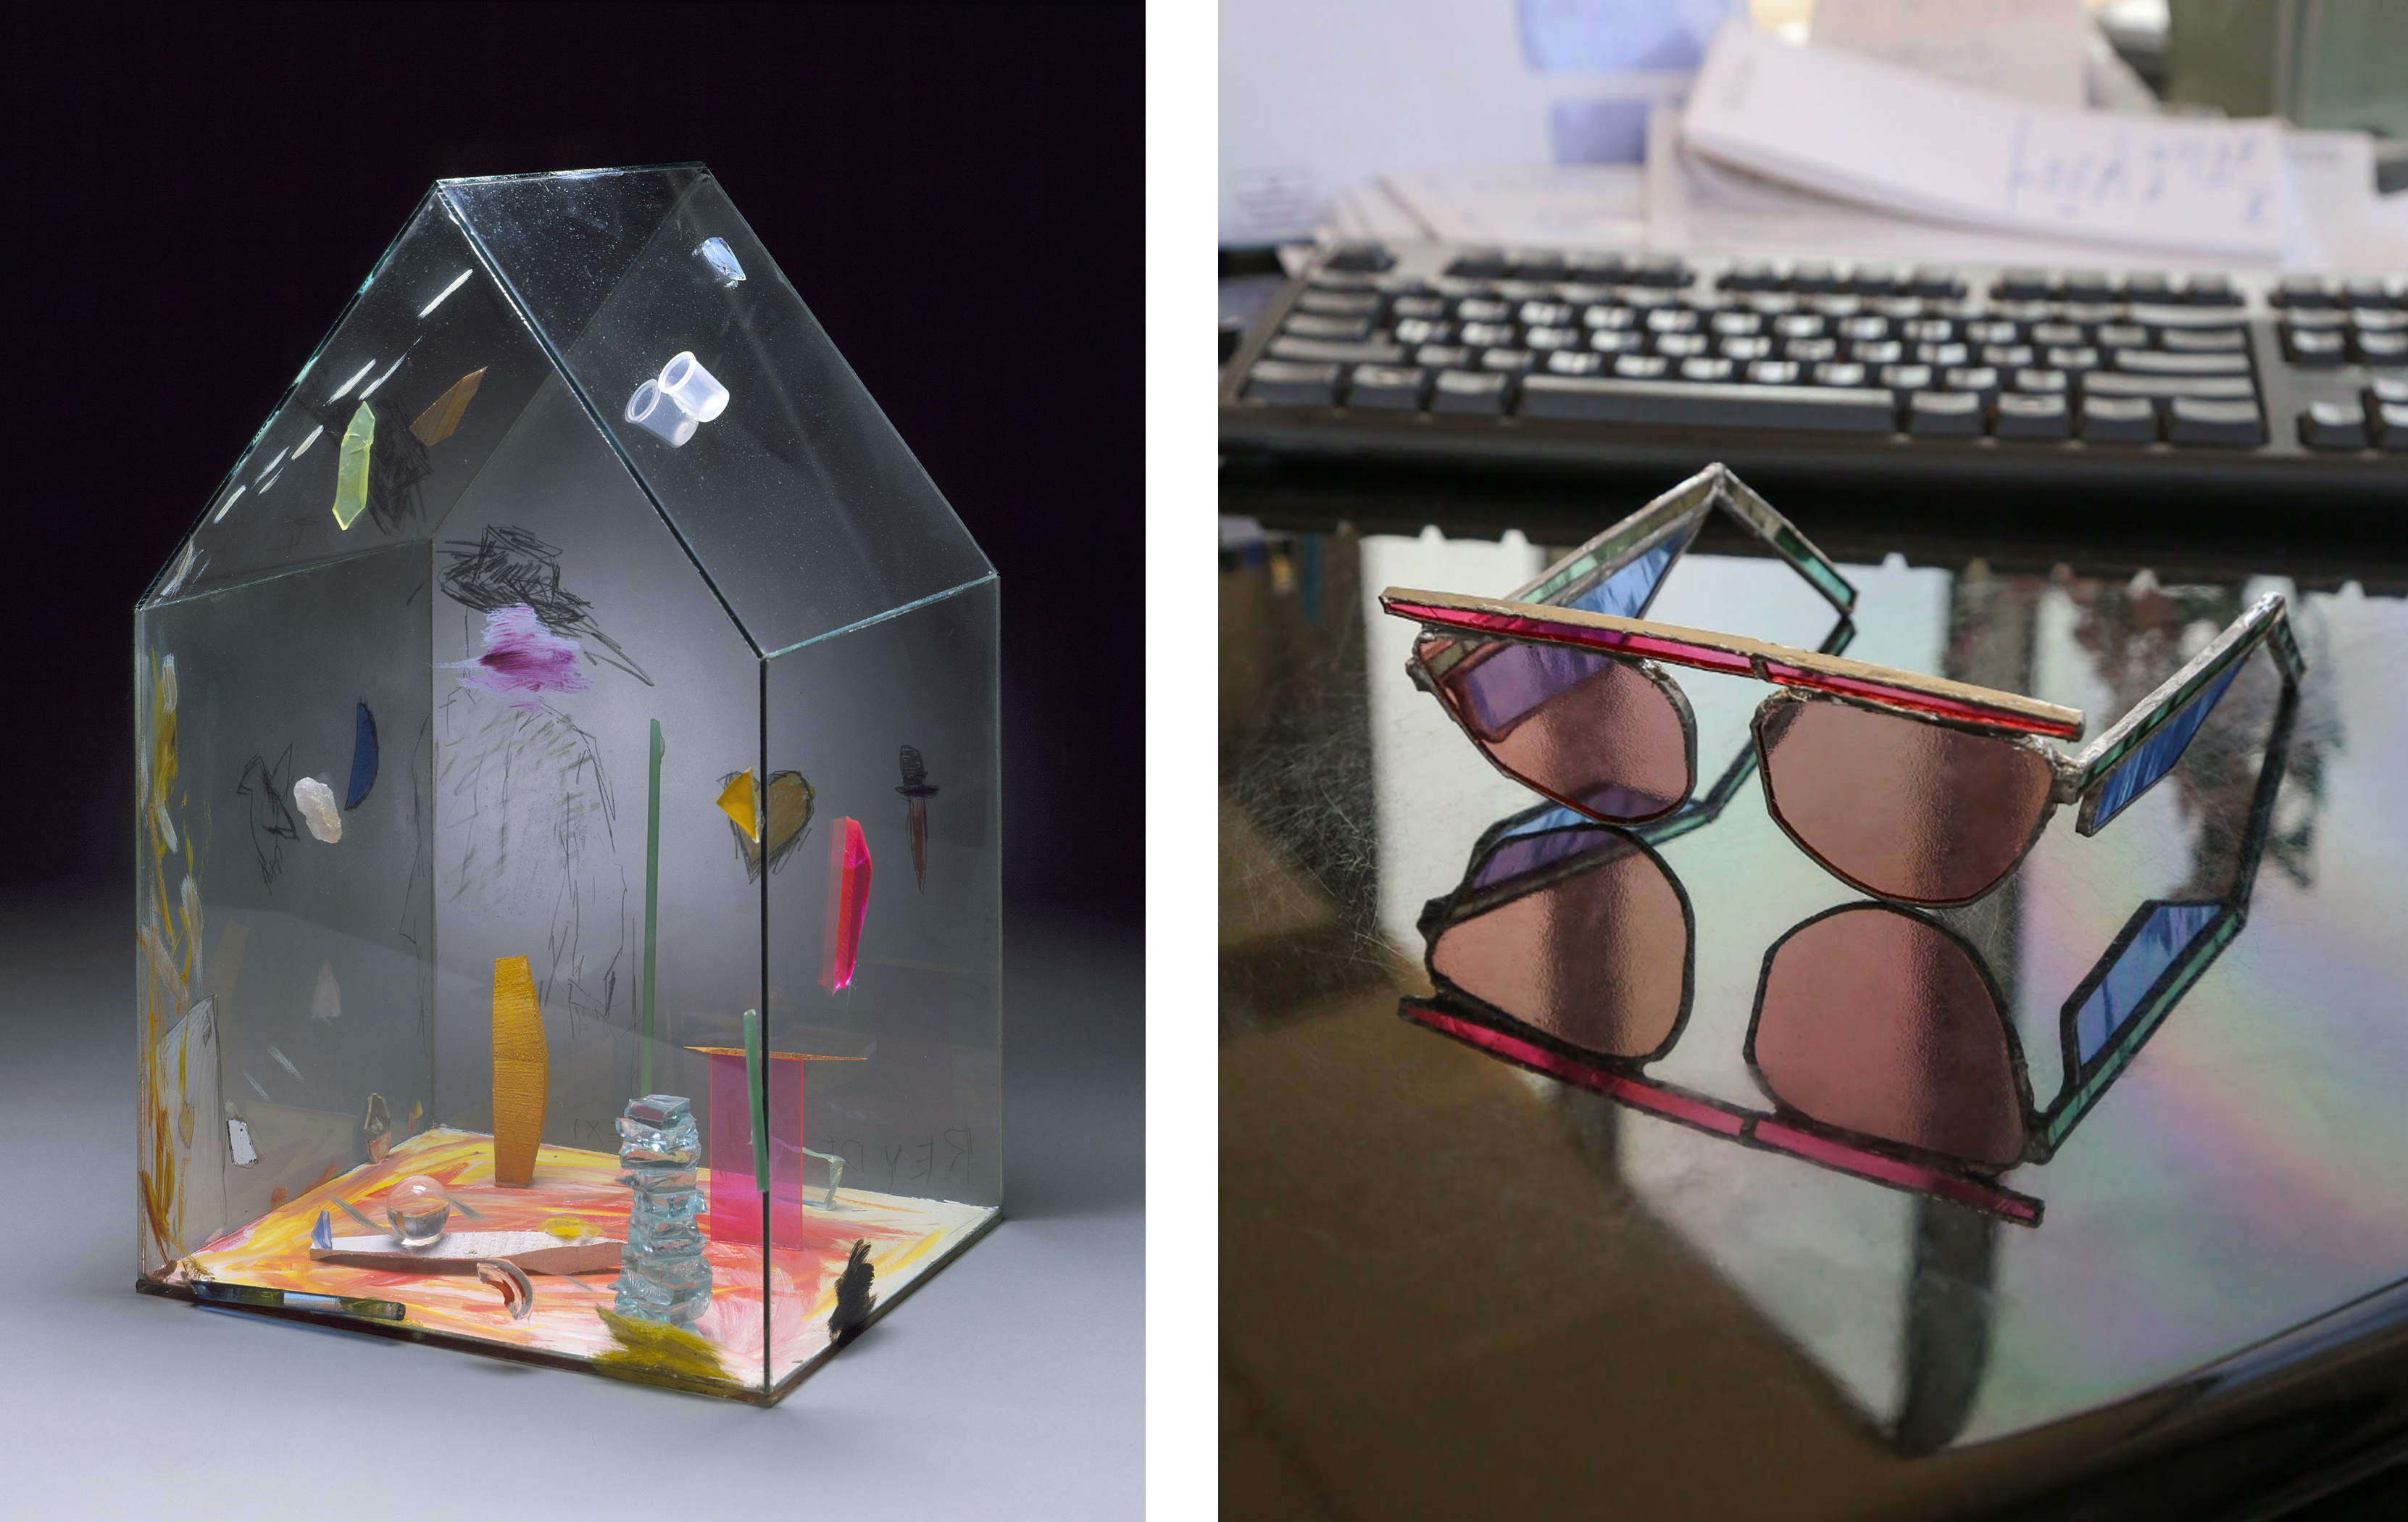 Left (LACMA selection): Therman Statom, Rey de Sol Mexico, 1988, Los Angeles County Museum of Art, gift of Daniel Greenberg and Susan Steinhauser, © Therman Statom, photo © Museum Associates/LACMA; Right (Artist work): Gillian Steiner, Rose Colored Glasses, 2019, photo courtesy of the artist